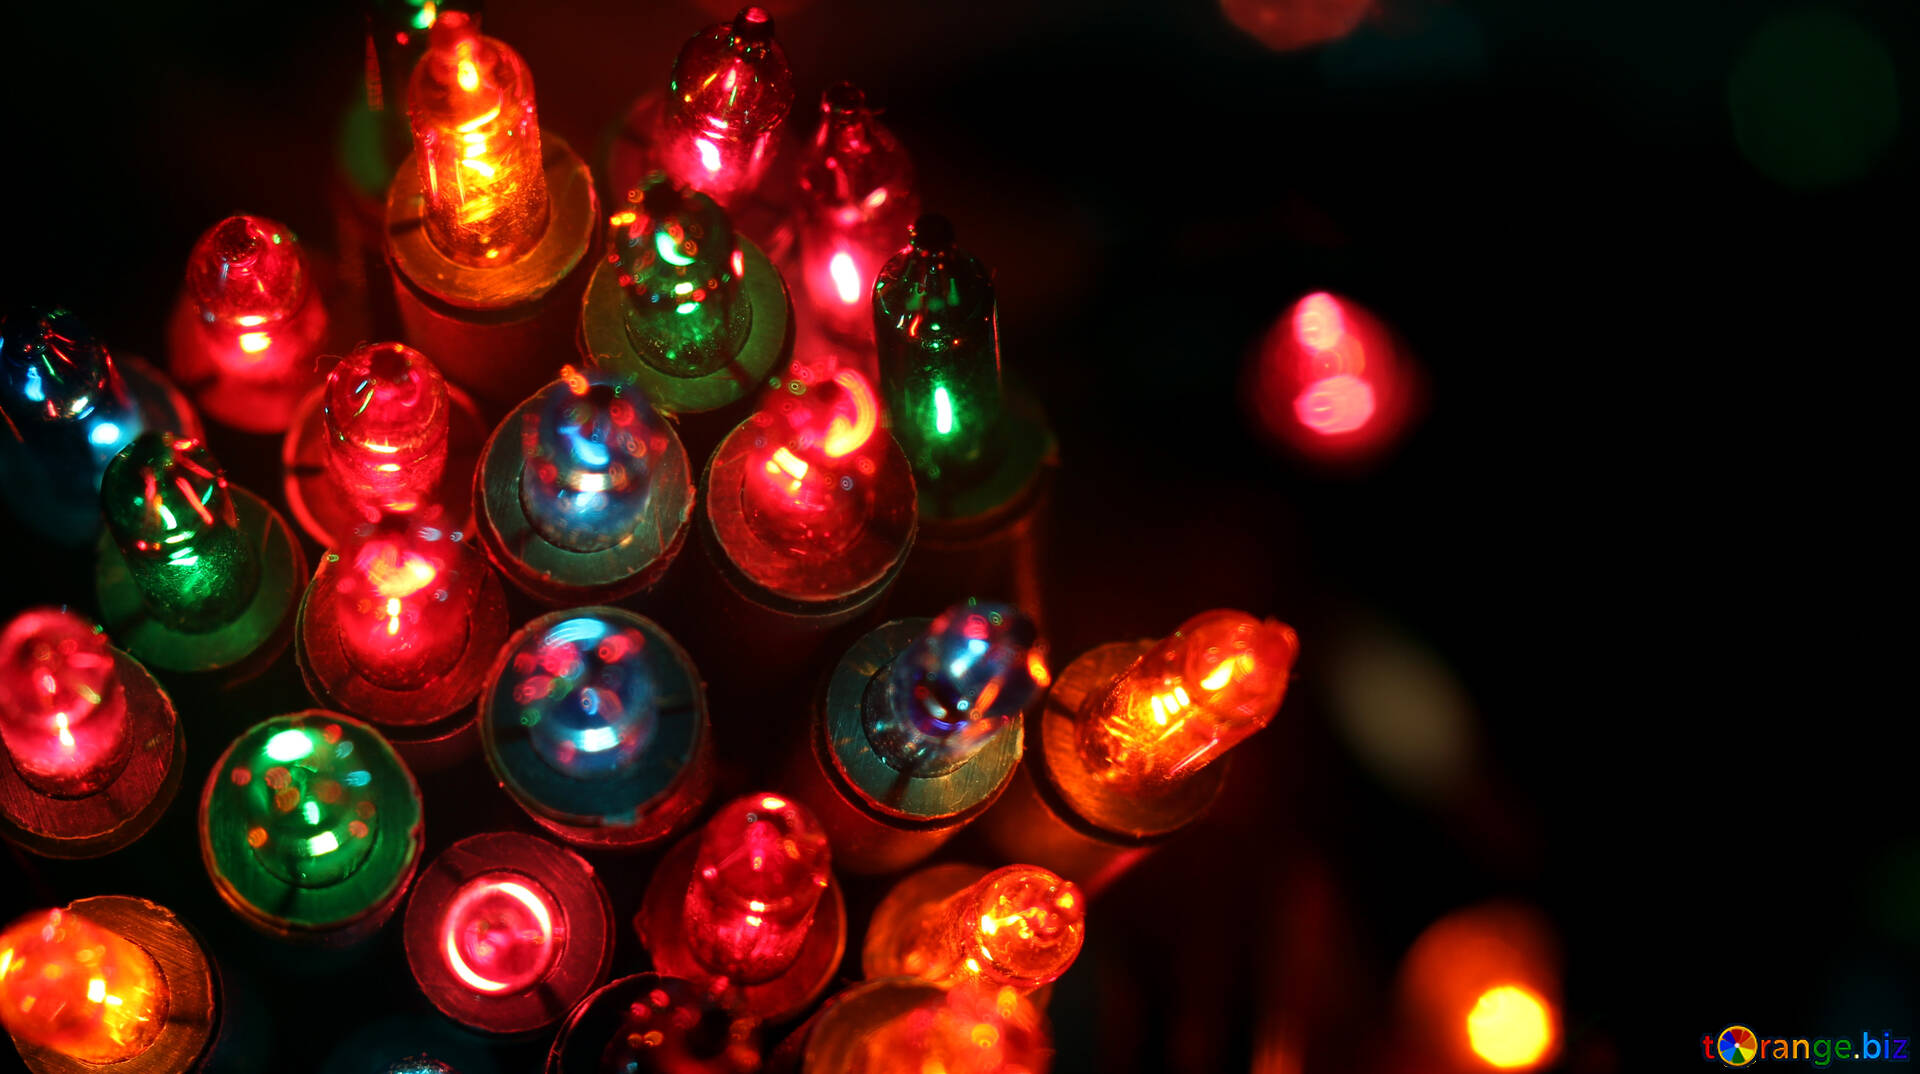 download free image colored light bulbs in hd wallpaper size 1920px